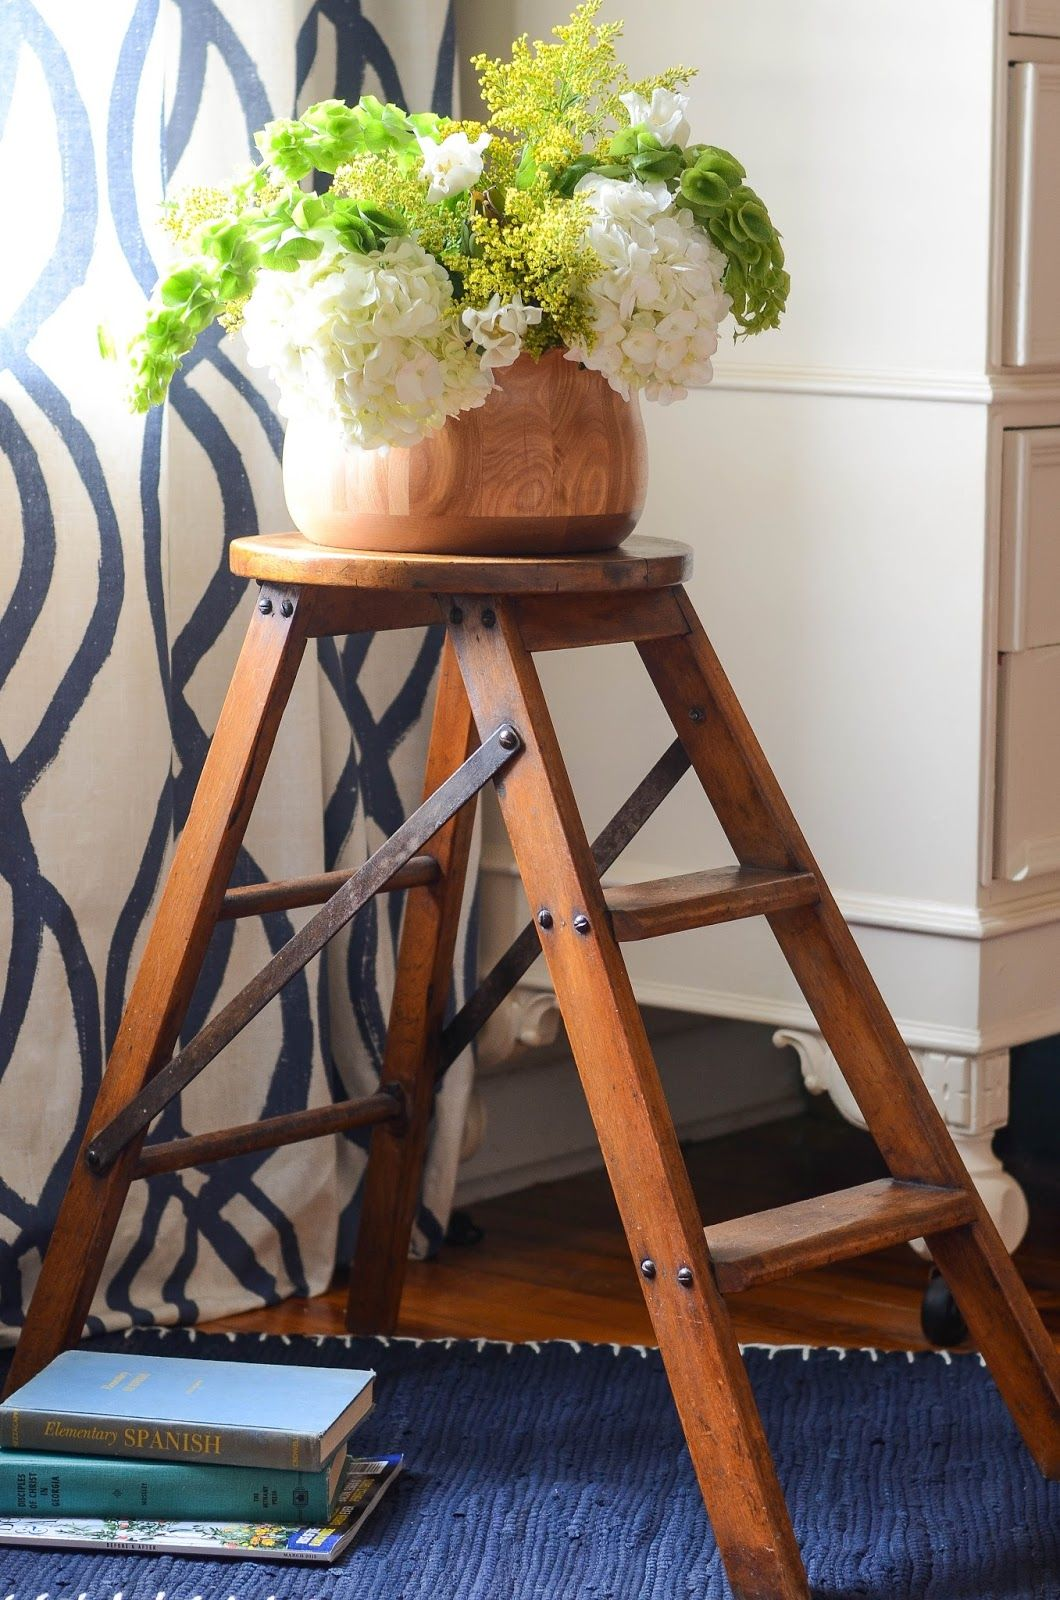 Enjoyable Antique Library Step Stool Antique Step Stools In 2019 Gmtry Best Dining Table And Chair Ideas Images Gmtryco